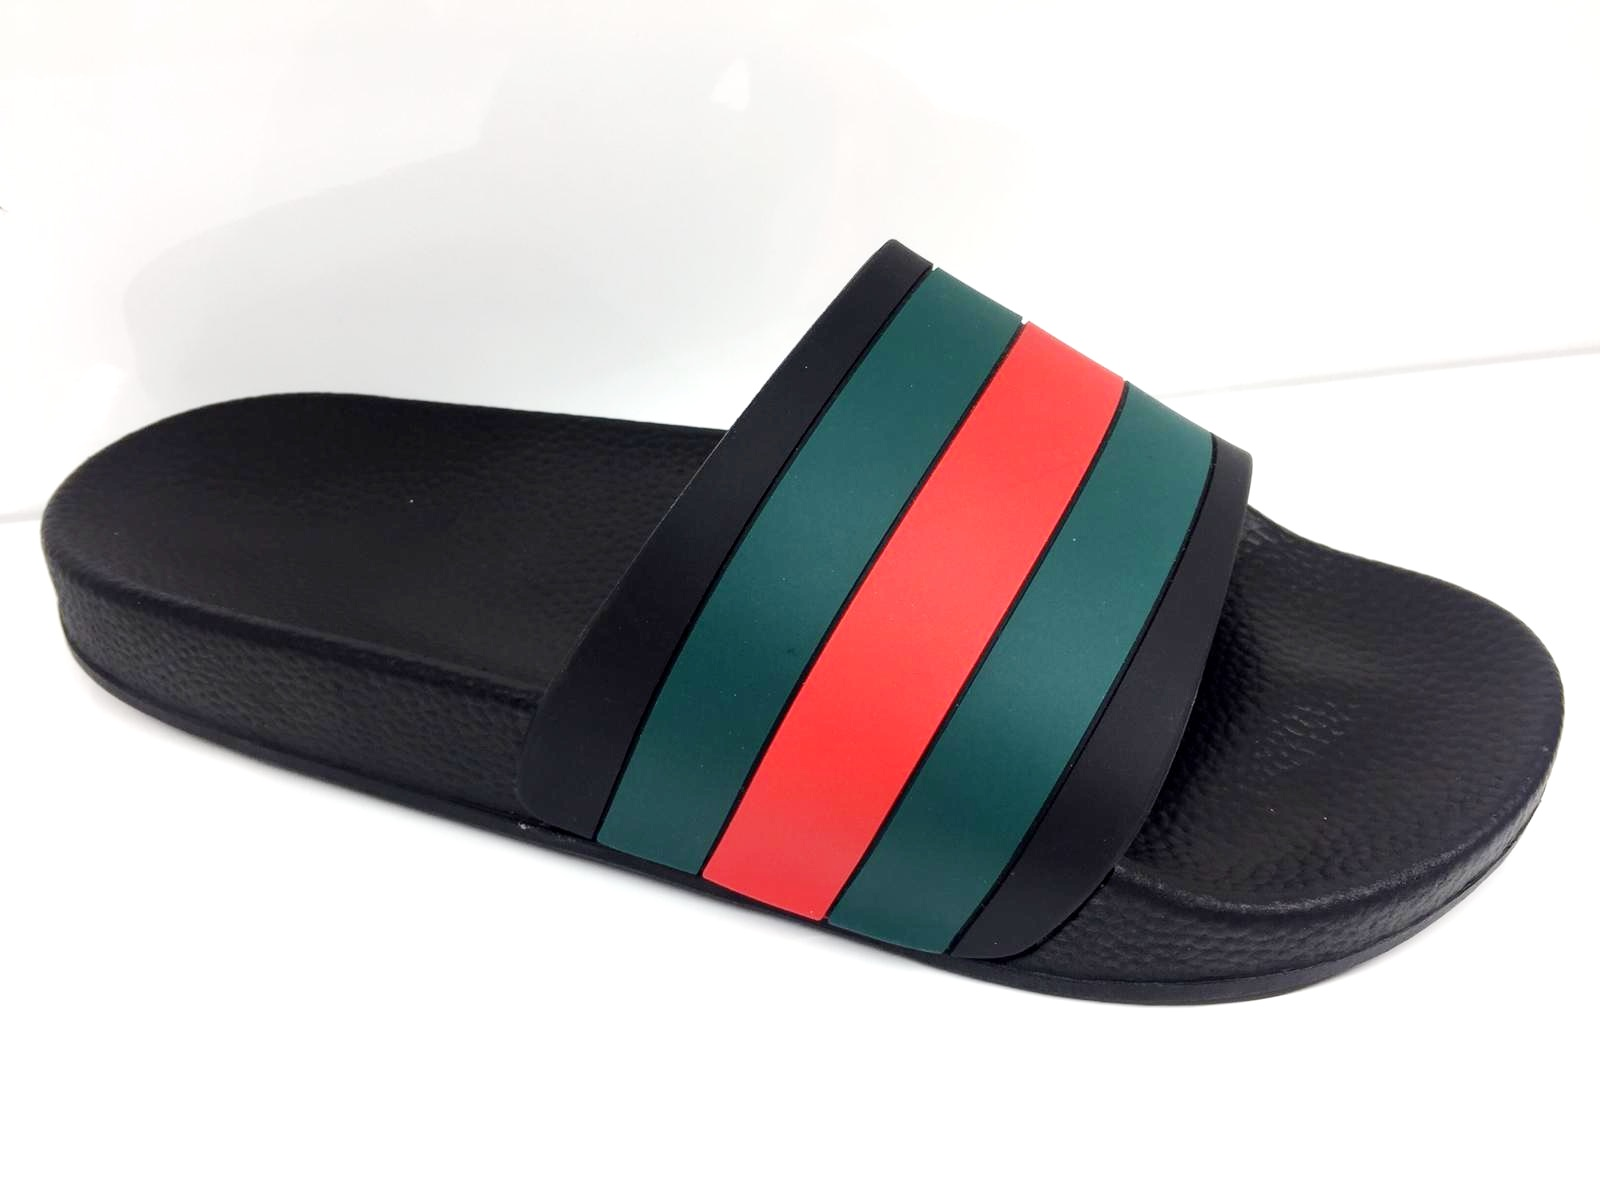 LADIES-BEACH-SUMMER-HOLIDAY-COMFY-DESIGNER-STYLE-STRIPE-SLIDERS-WOMEN-SHOES-SIZE thumbnail 2